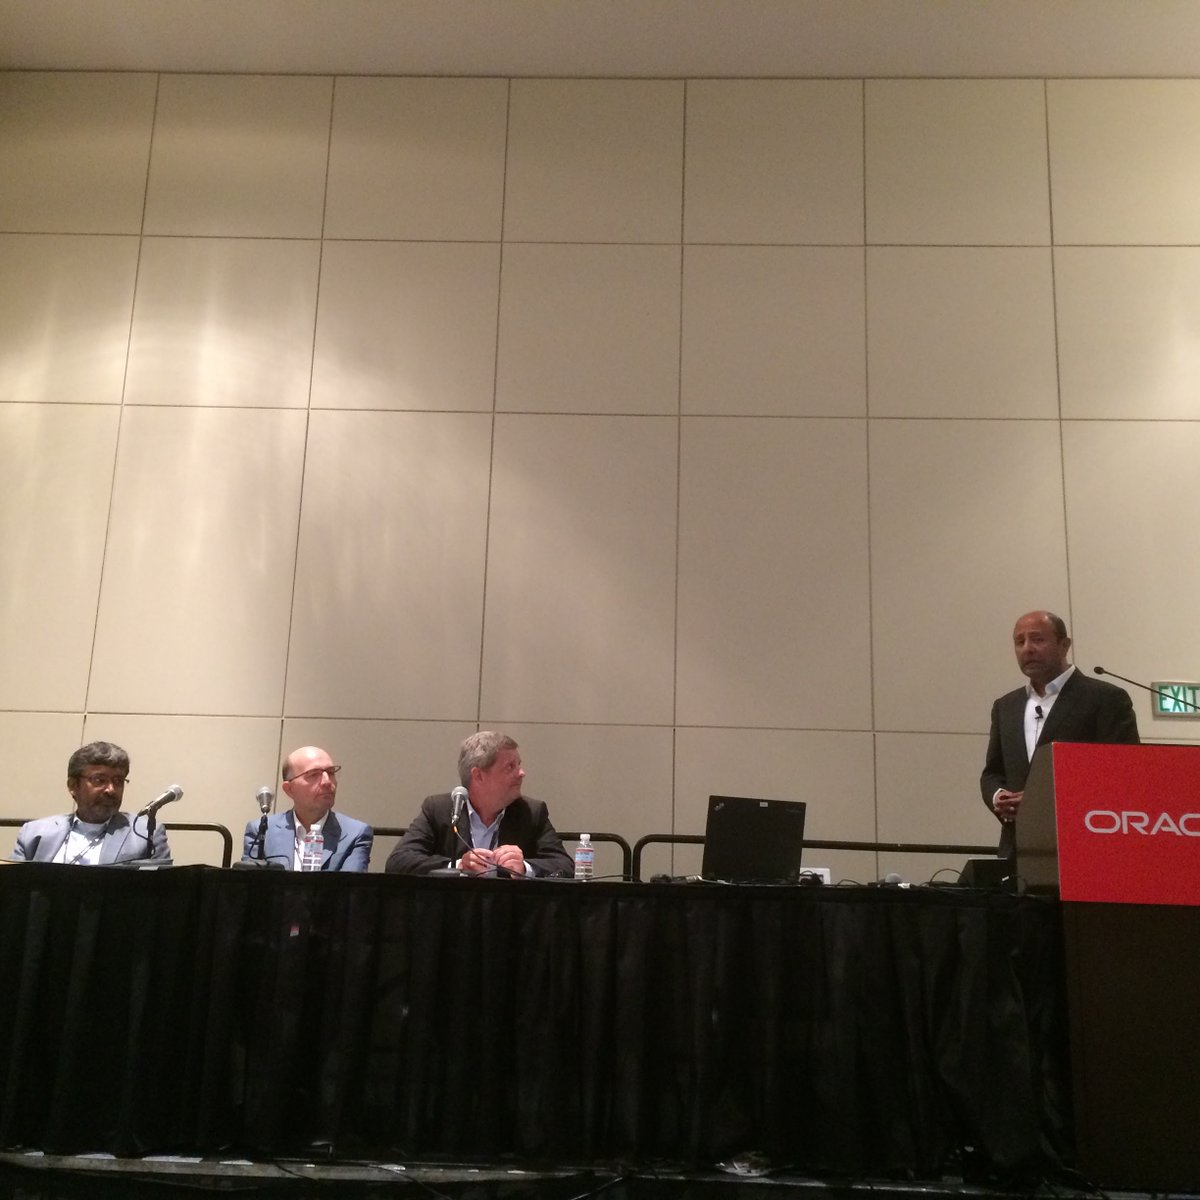 Great #oow16 session: @AaliMasood @Lochbridge #Caixabank @SIA_pressoffice talk about driving value from #BigData  http:// ora.cl/3kW2     <br>http://pic.twitter.com/NHo0dbSLUZ